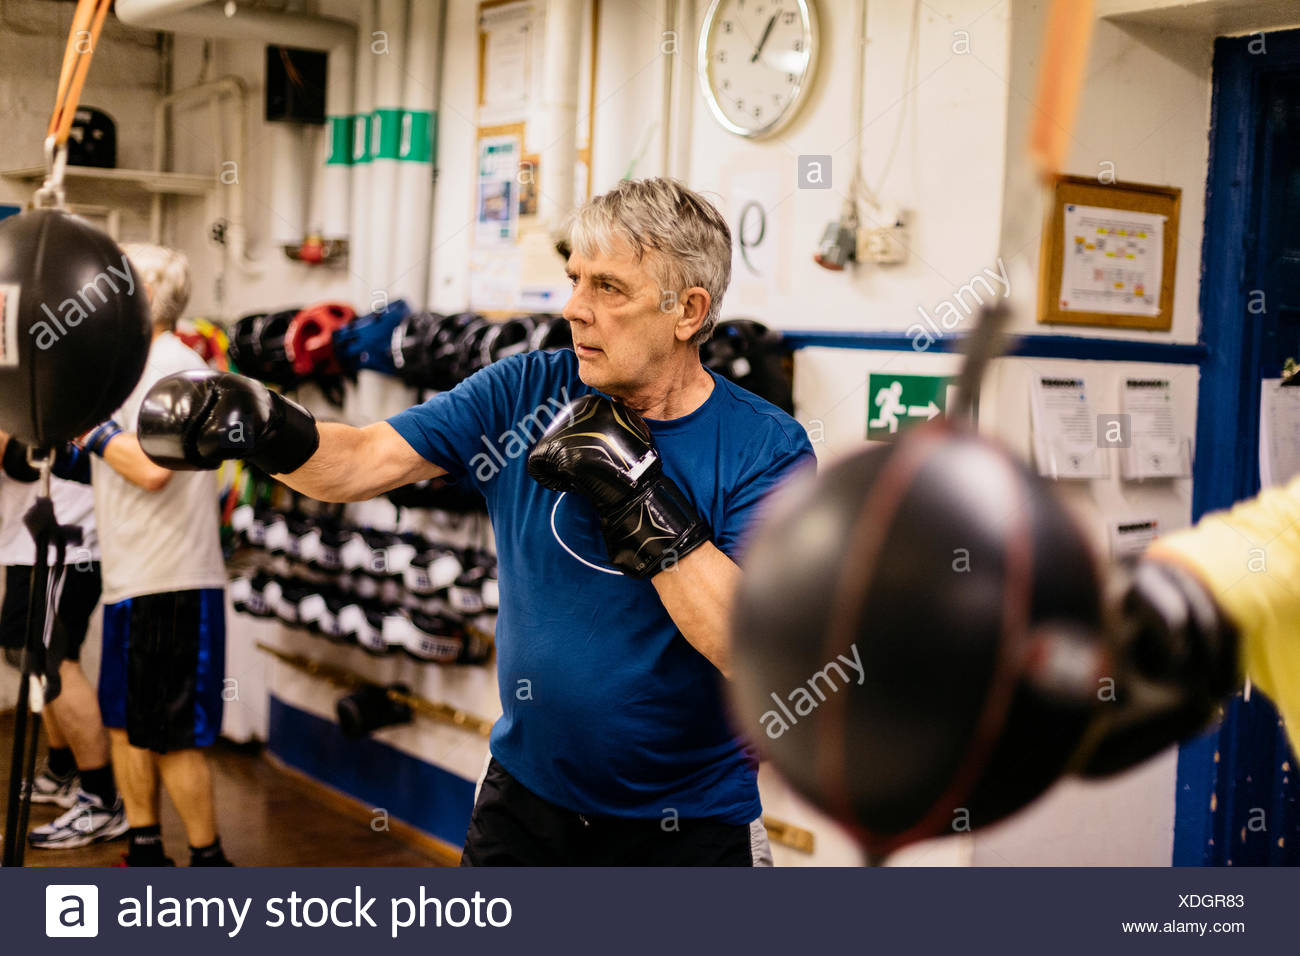 1c696770a4d Senior man training with a punching bag Stock Photo  283725907 - Alamy